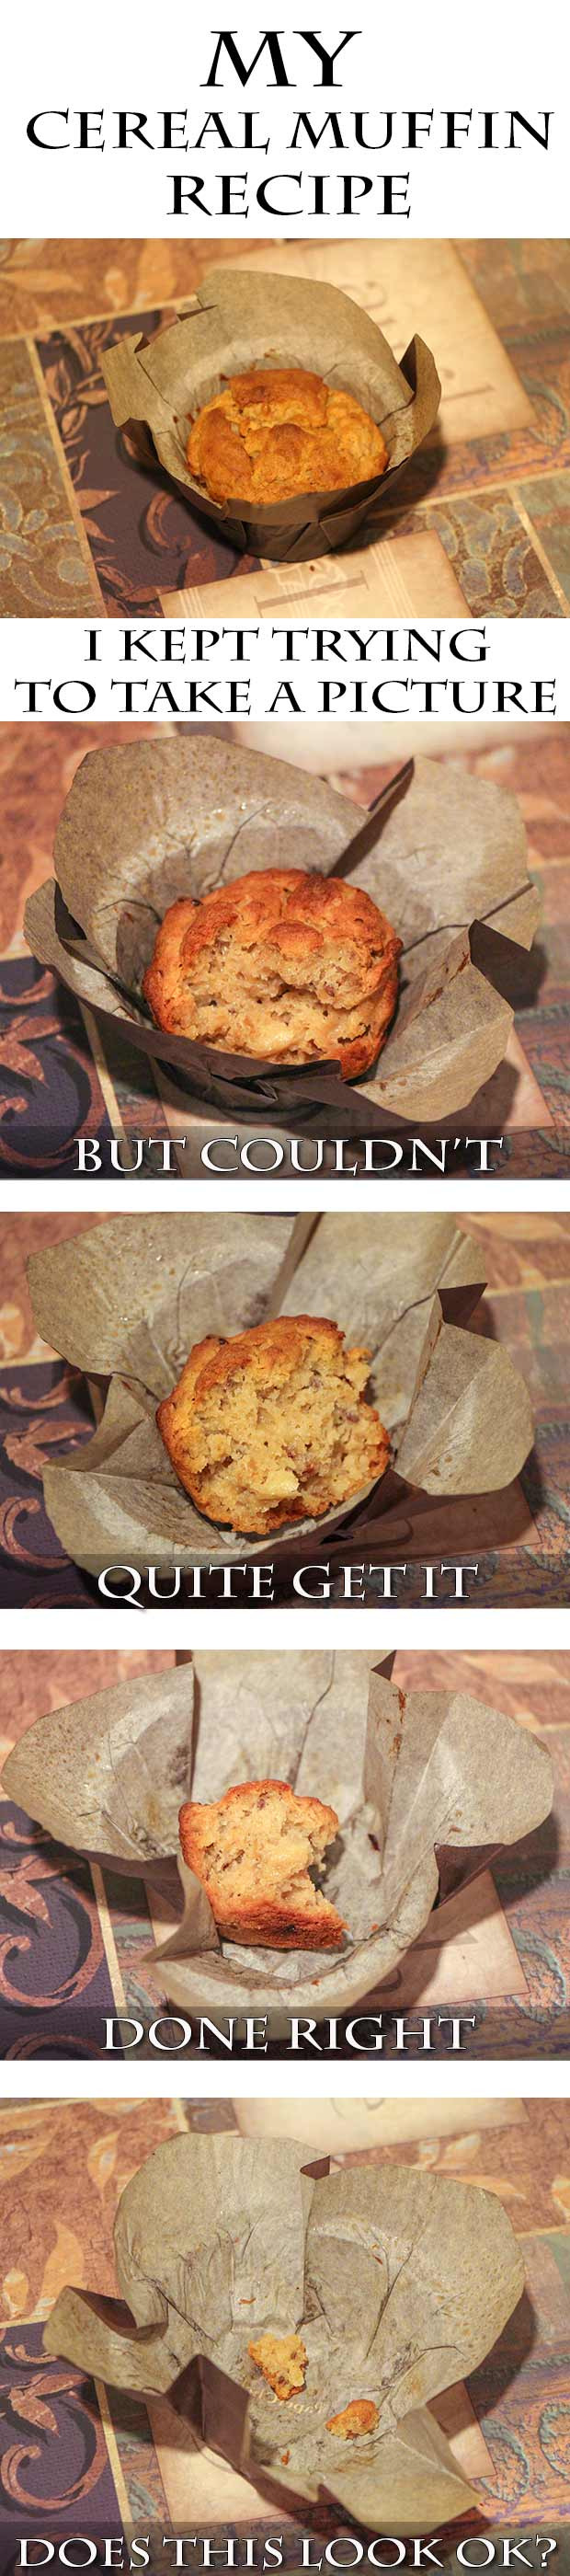 My Cereal Muffin Recipe. Yes, it is delicious, but when it comes to photography, does it look ok?